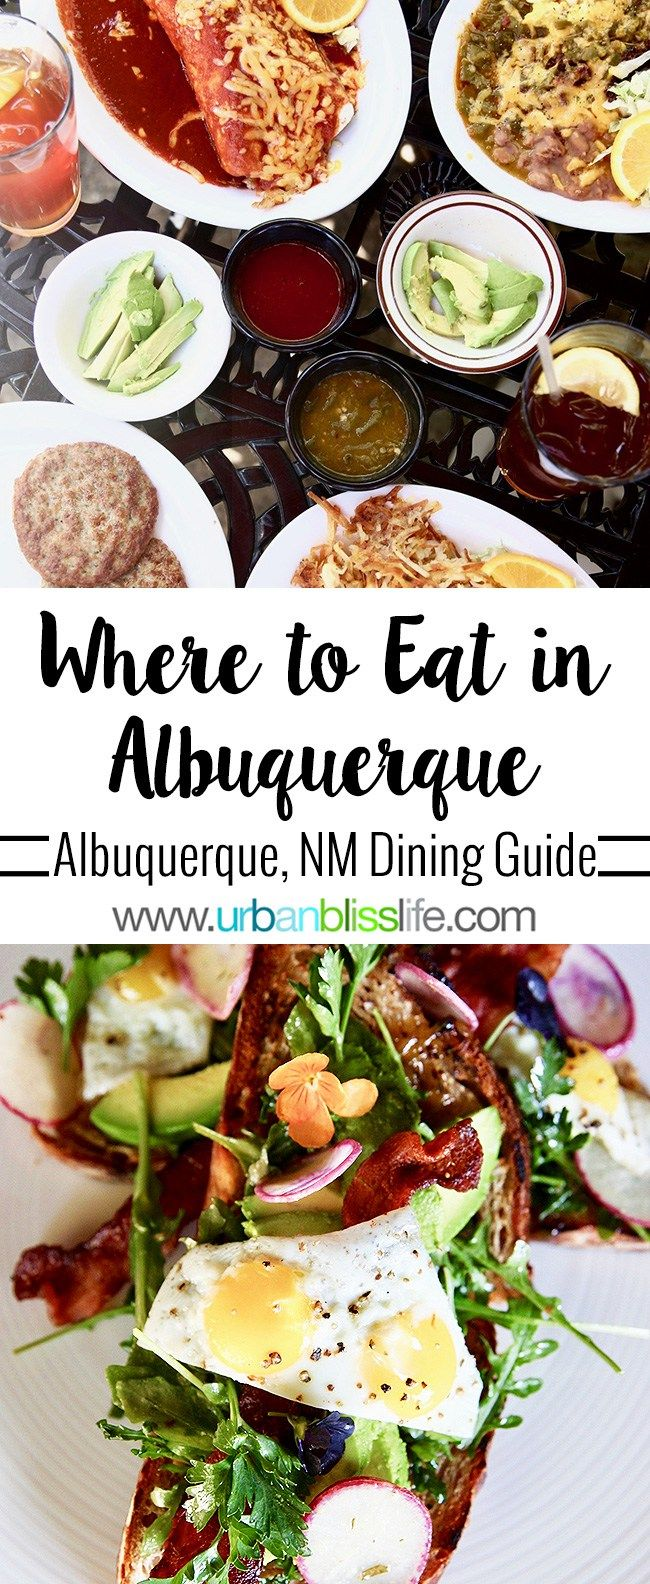 Where To Eat In Albuquerque New Mexico A Dining Guide Urban Bliss Life Footravel Foodandtravel Travel Newmexico Culinarytravel